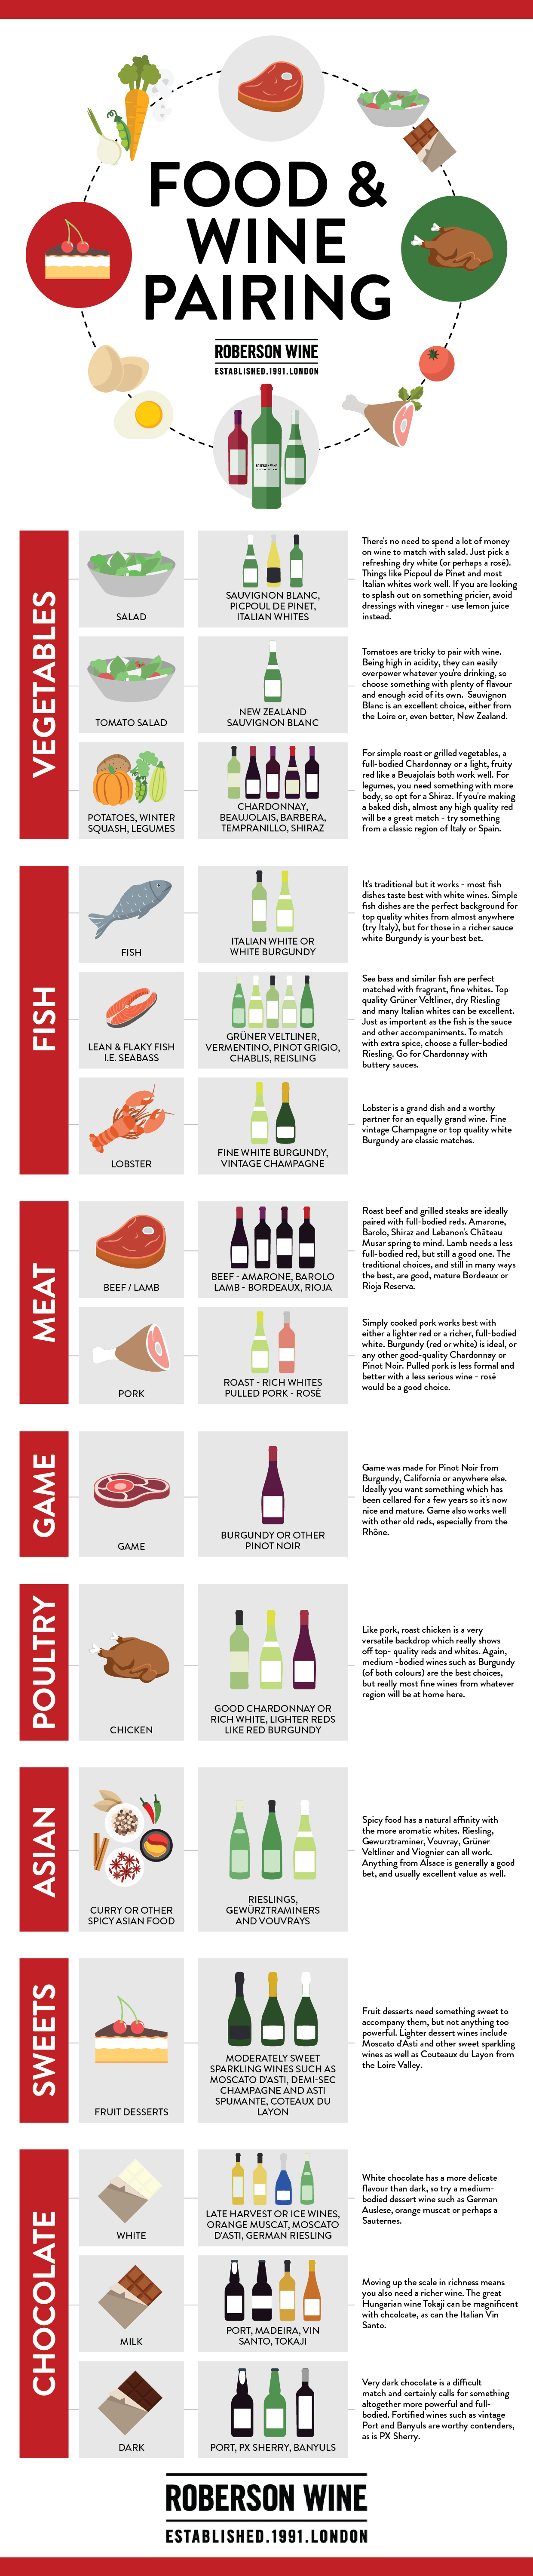 food-and-wine-pairing